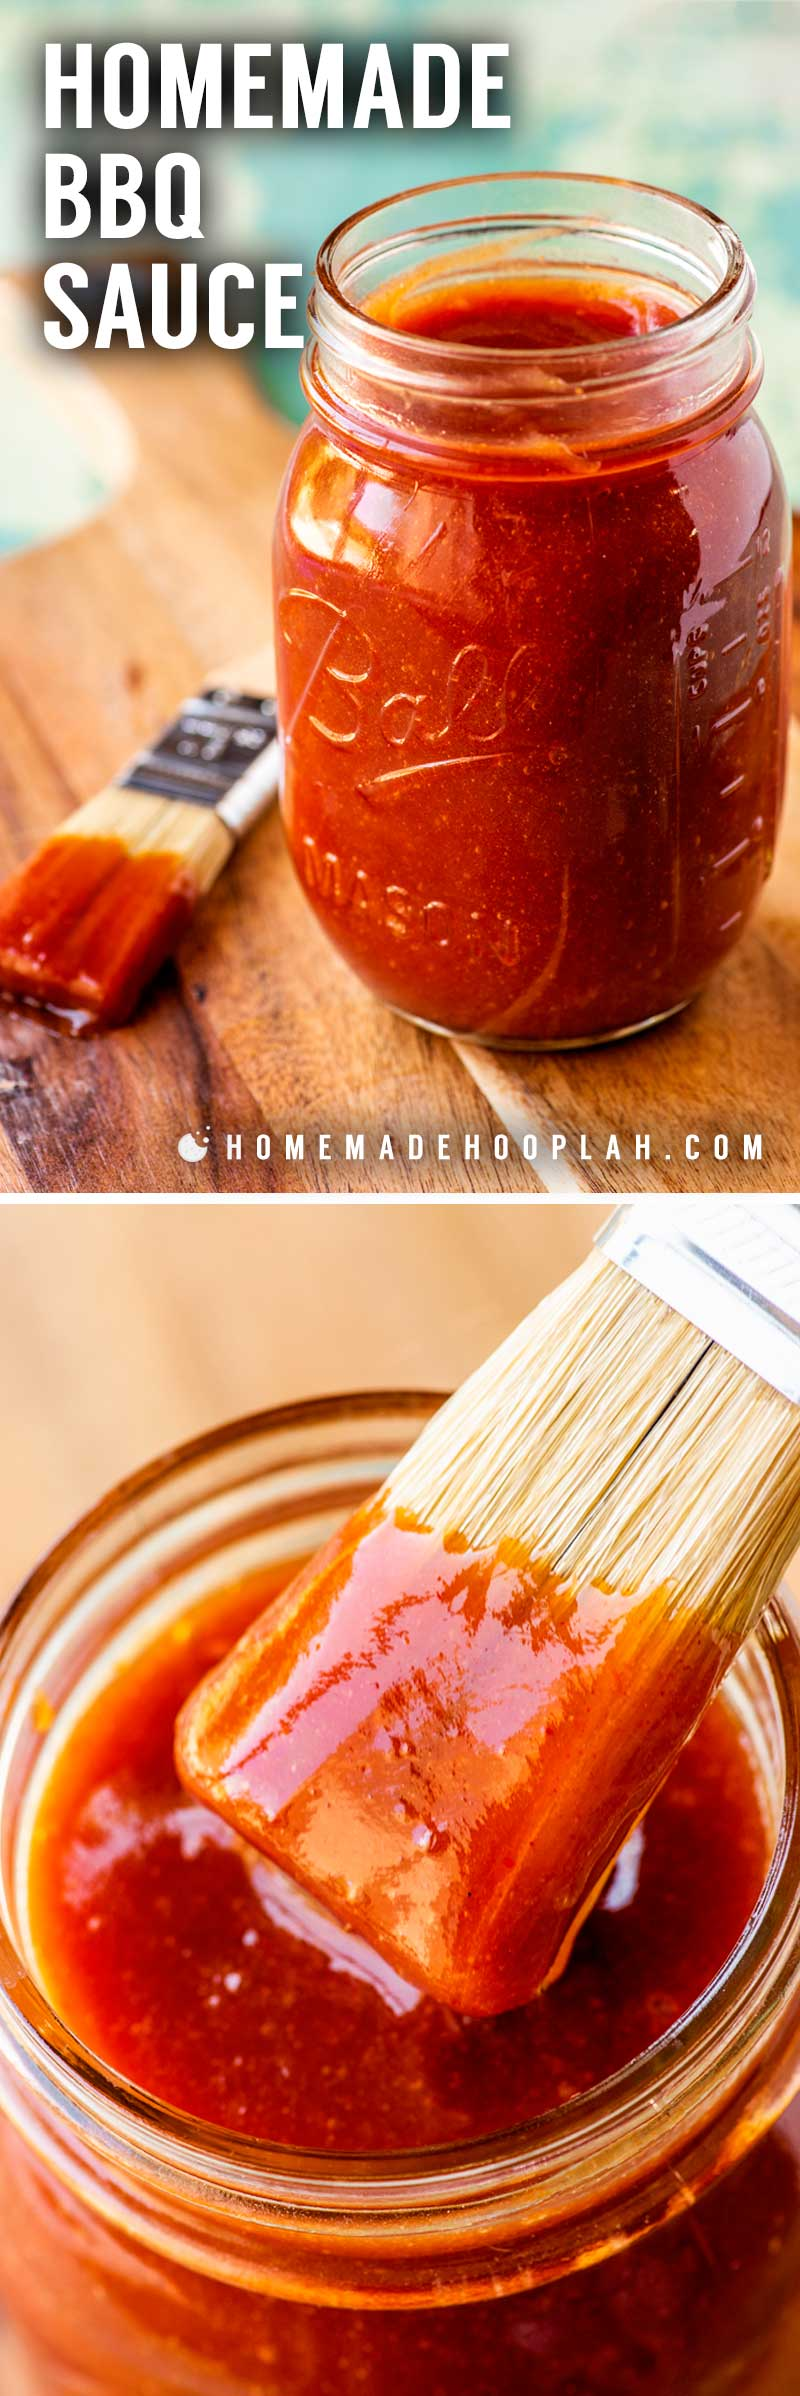 Homemade BBQ Sauce! Make classic BBQ sauce at home in less than 5 minutes by taking common sauces and spices and whipping them up in a food processor (so no cooking required!) It's a must-have recipe for countless crowd-pleasing dishes!   HomemadeHooplah.com